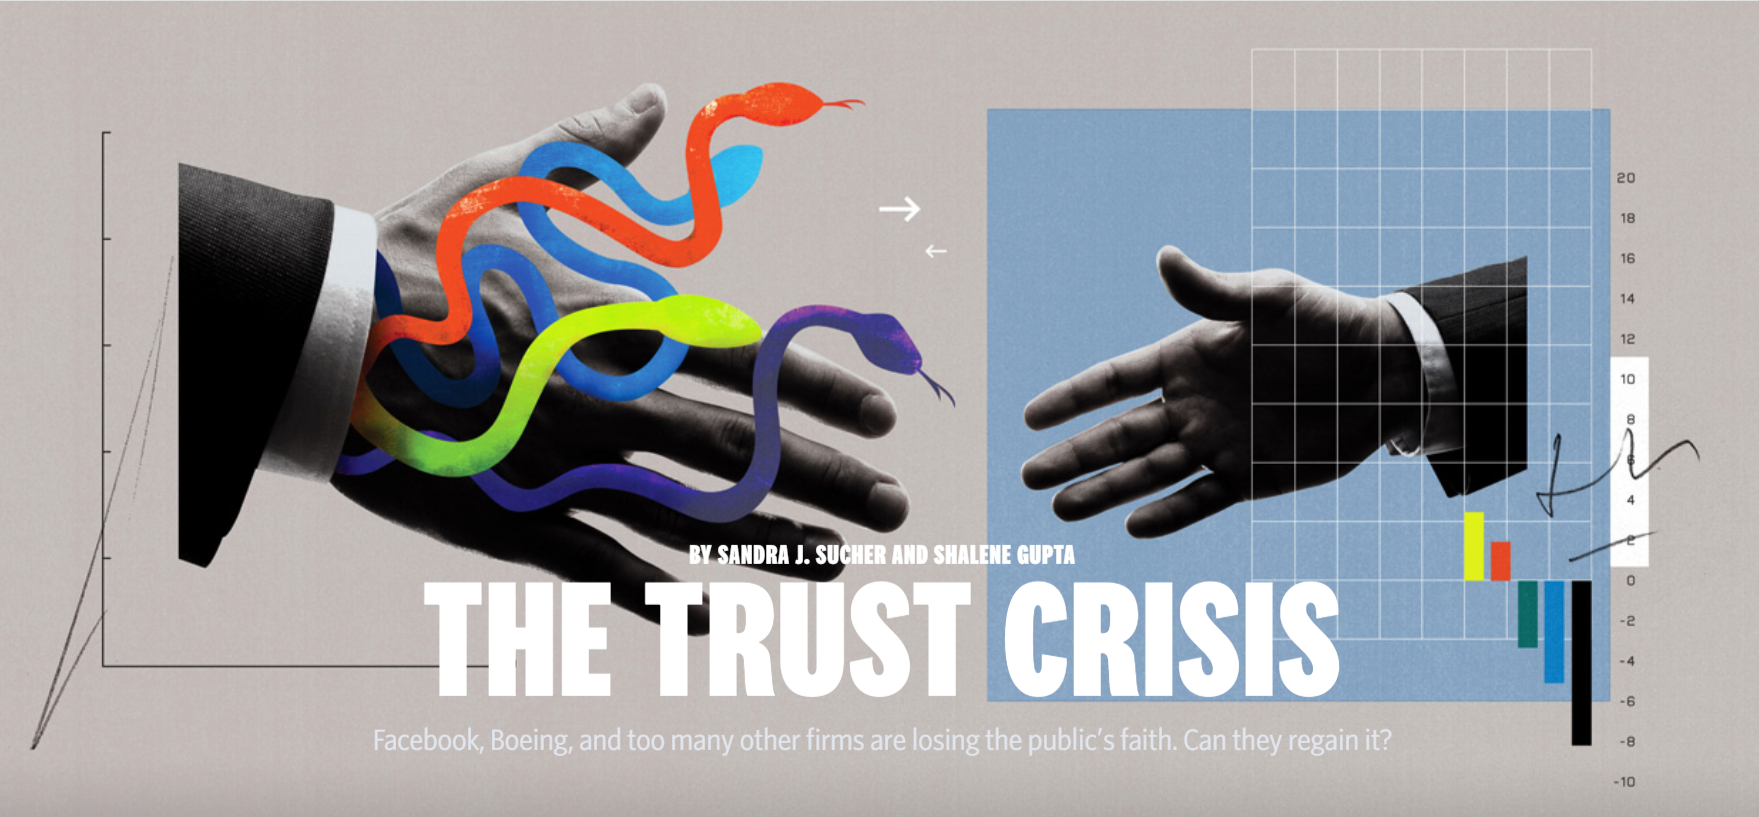 The trust crisis: Facebook, Boeing and too many other firms are losing the public's faith. Can they regain it?